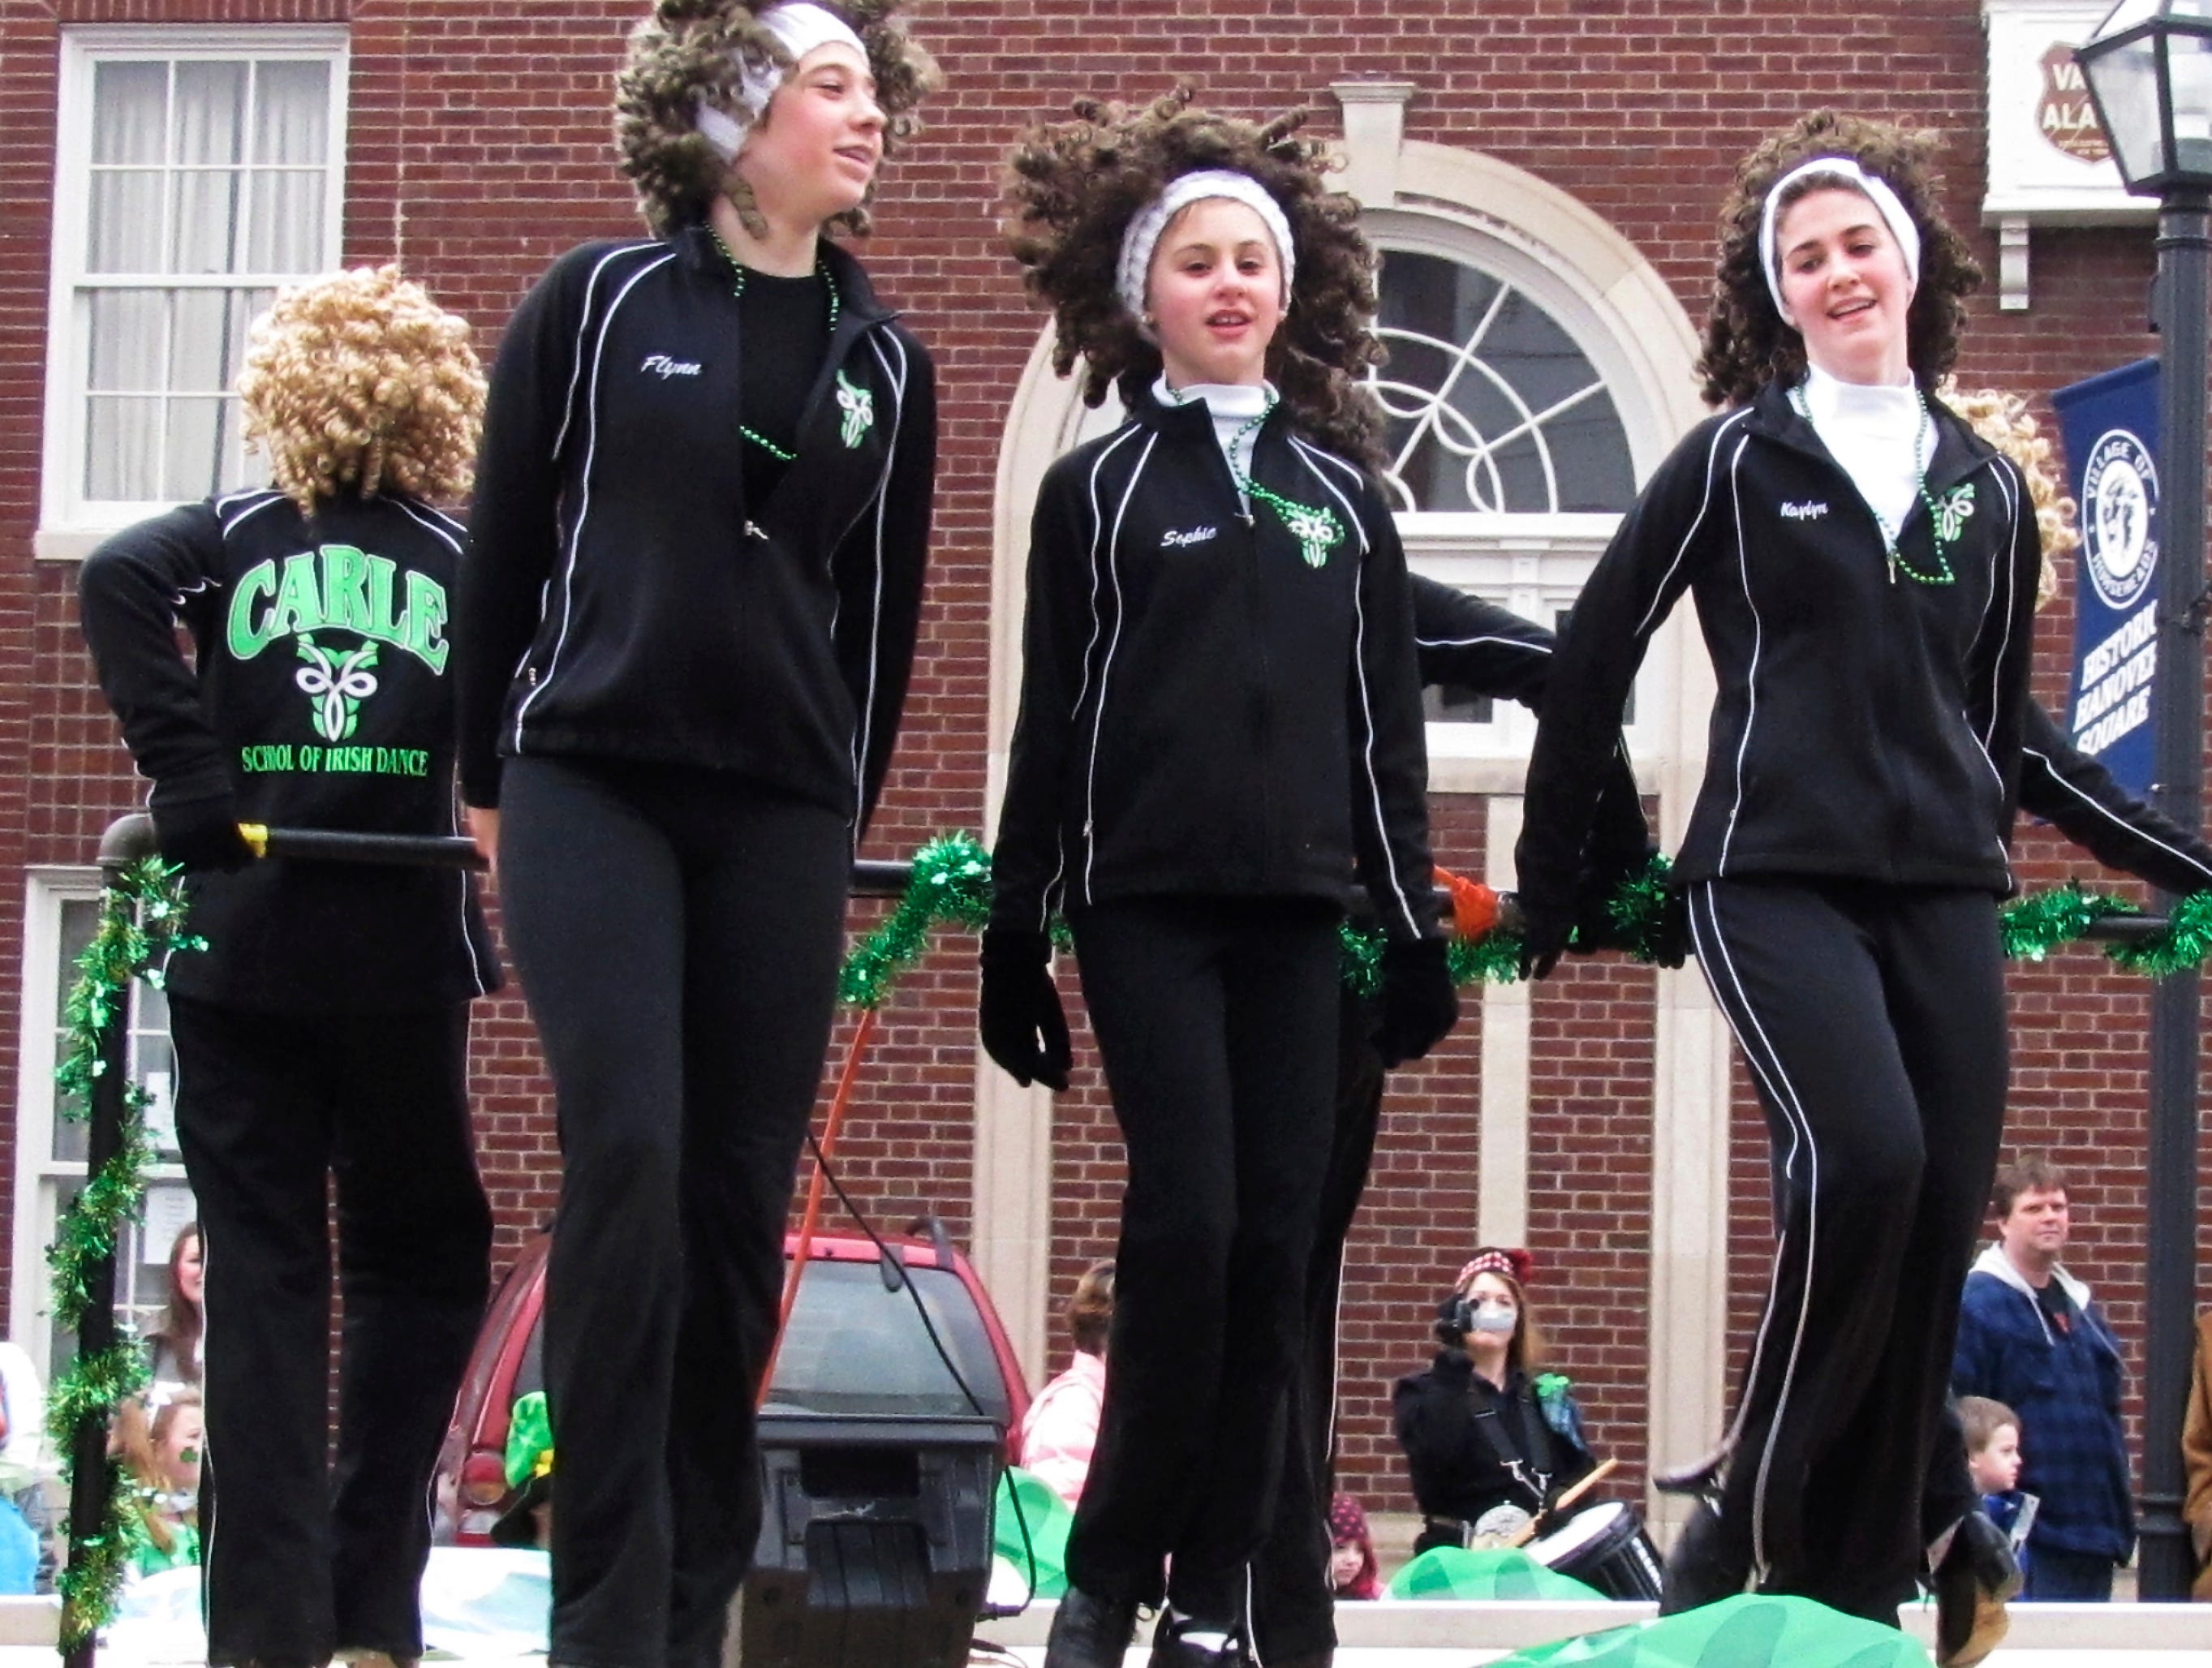 2011: Members of the Carle School of Irish Dance perform during Sunday's annual Horseheads St. Patrick's Day parade.